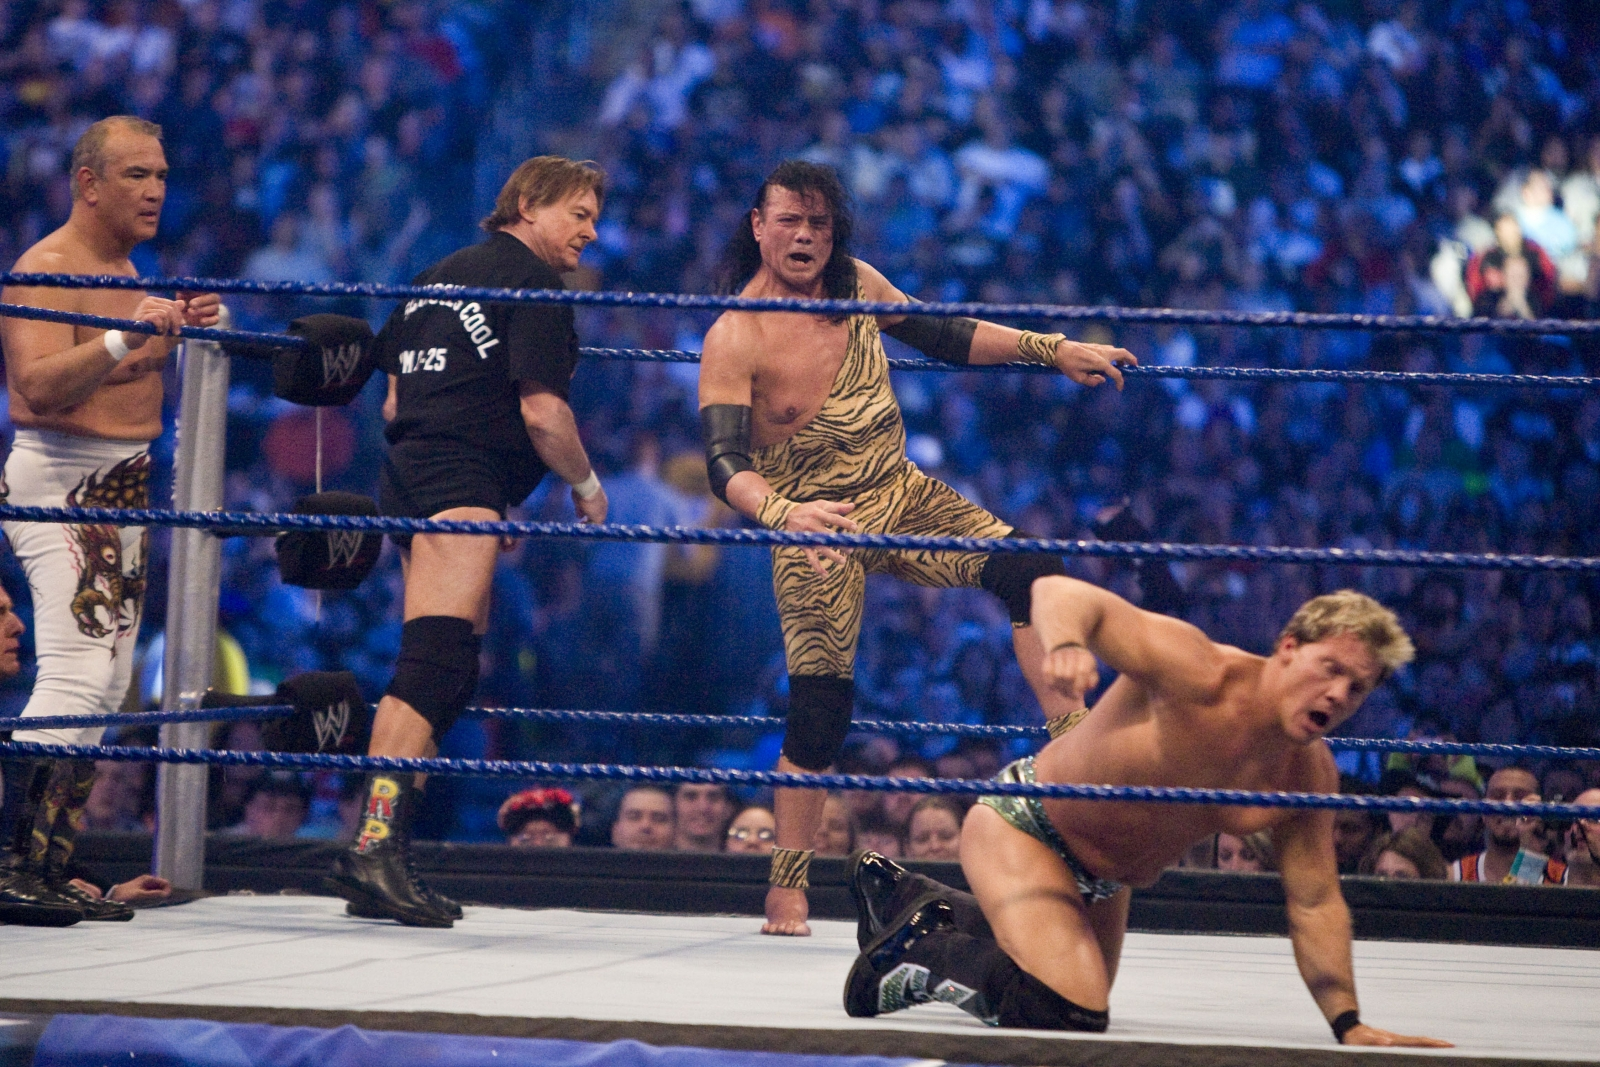 Jimmy 'Superfly' Snuka steps into the ring